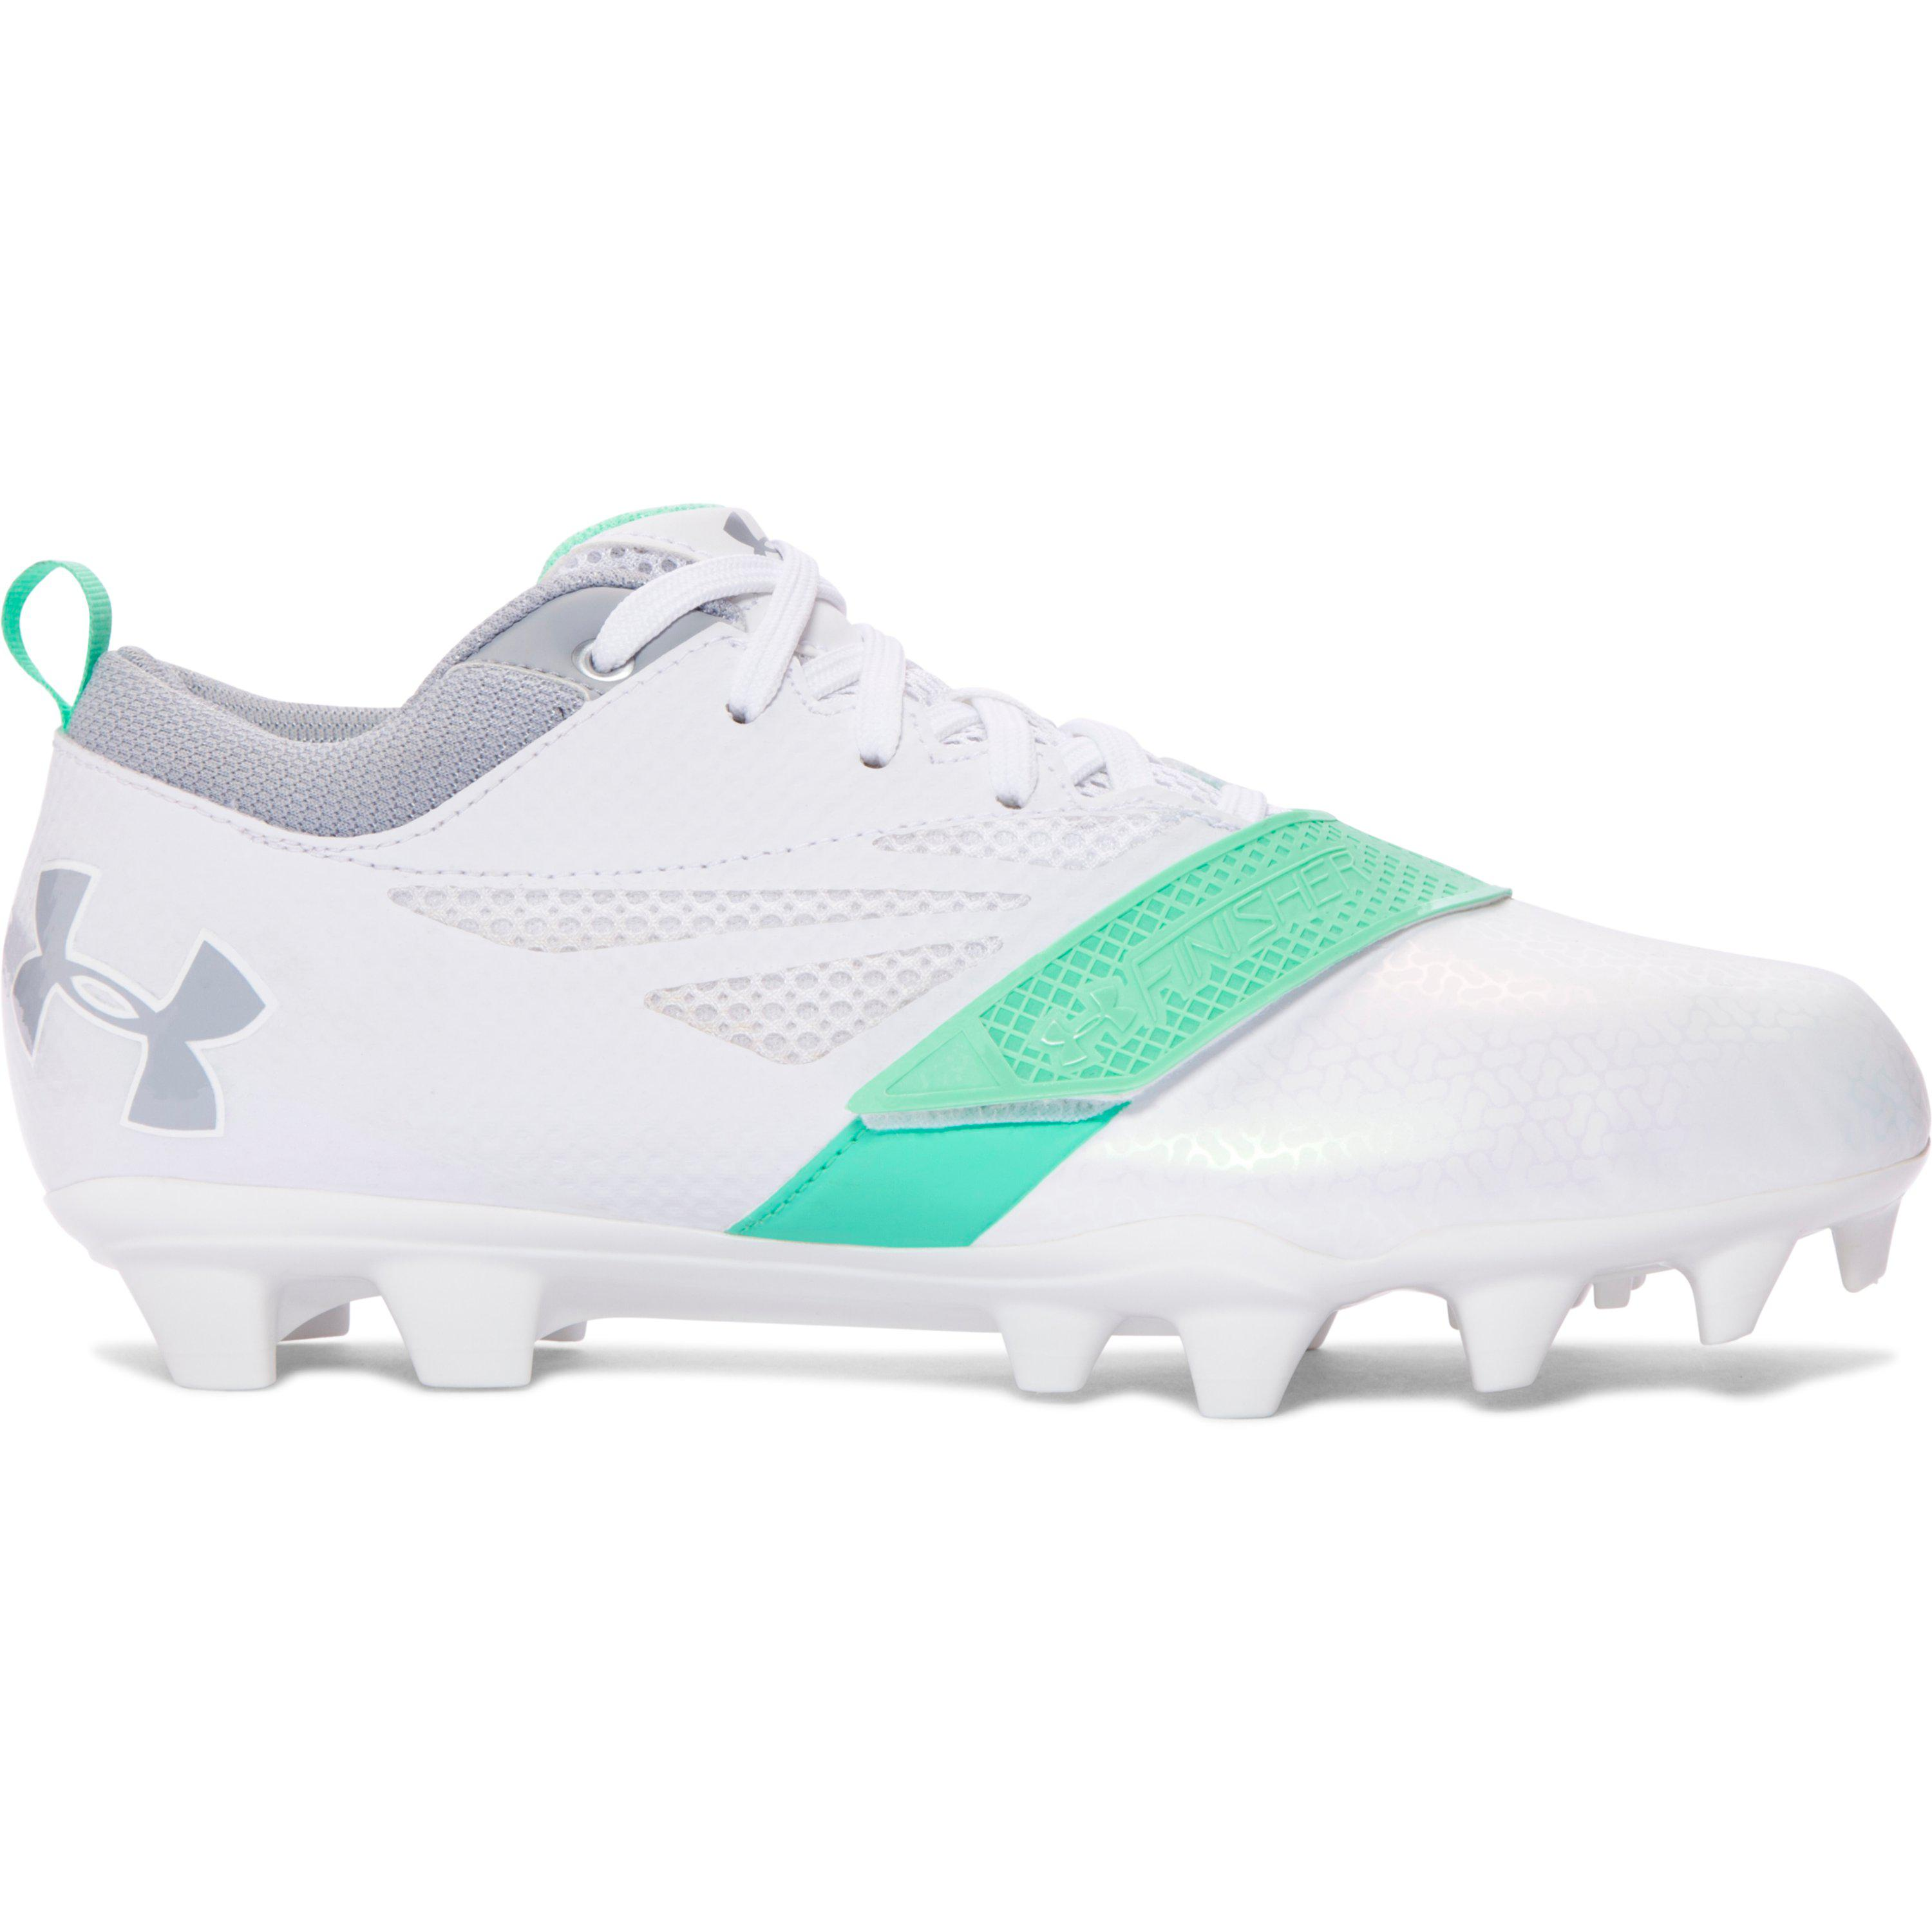 296fd0863dc85 Under Armour Lax Finisher Mc Lacrosse Shoe, White/black in White - Lyst